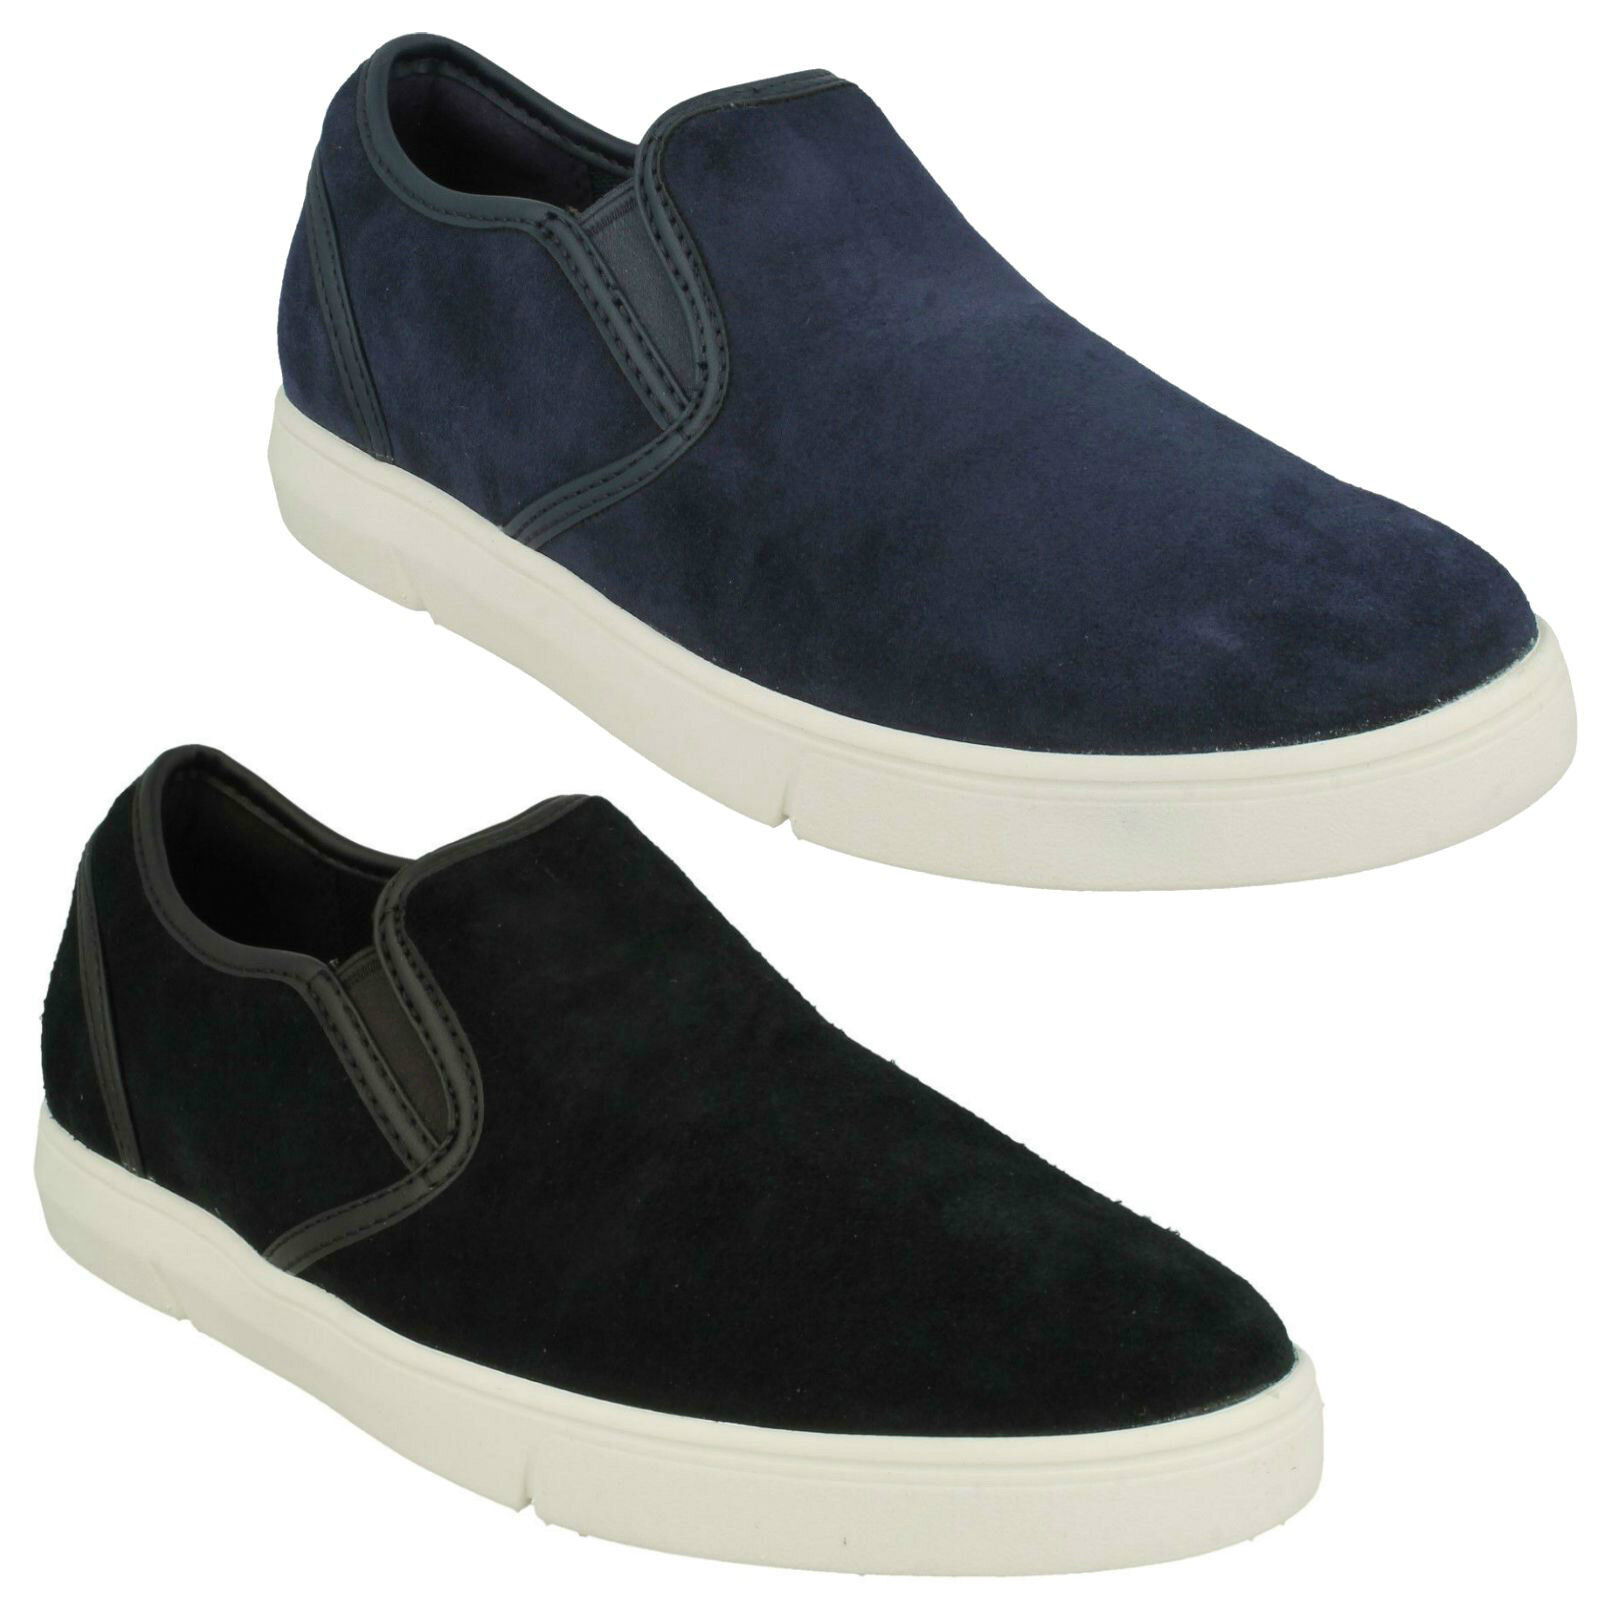 MENS CLARKS LANDRY STEP SMART CASUAL SPORTS SLIP ON PUMPS SUEDE LEATHER EVERYDAY